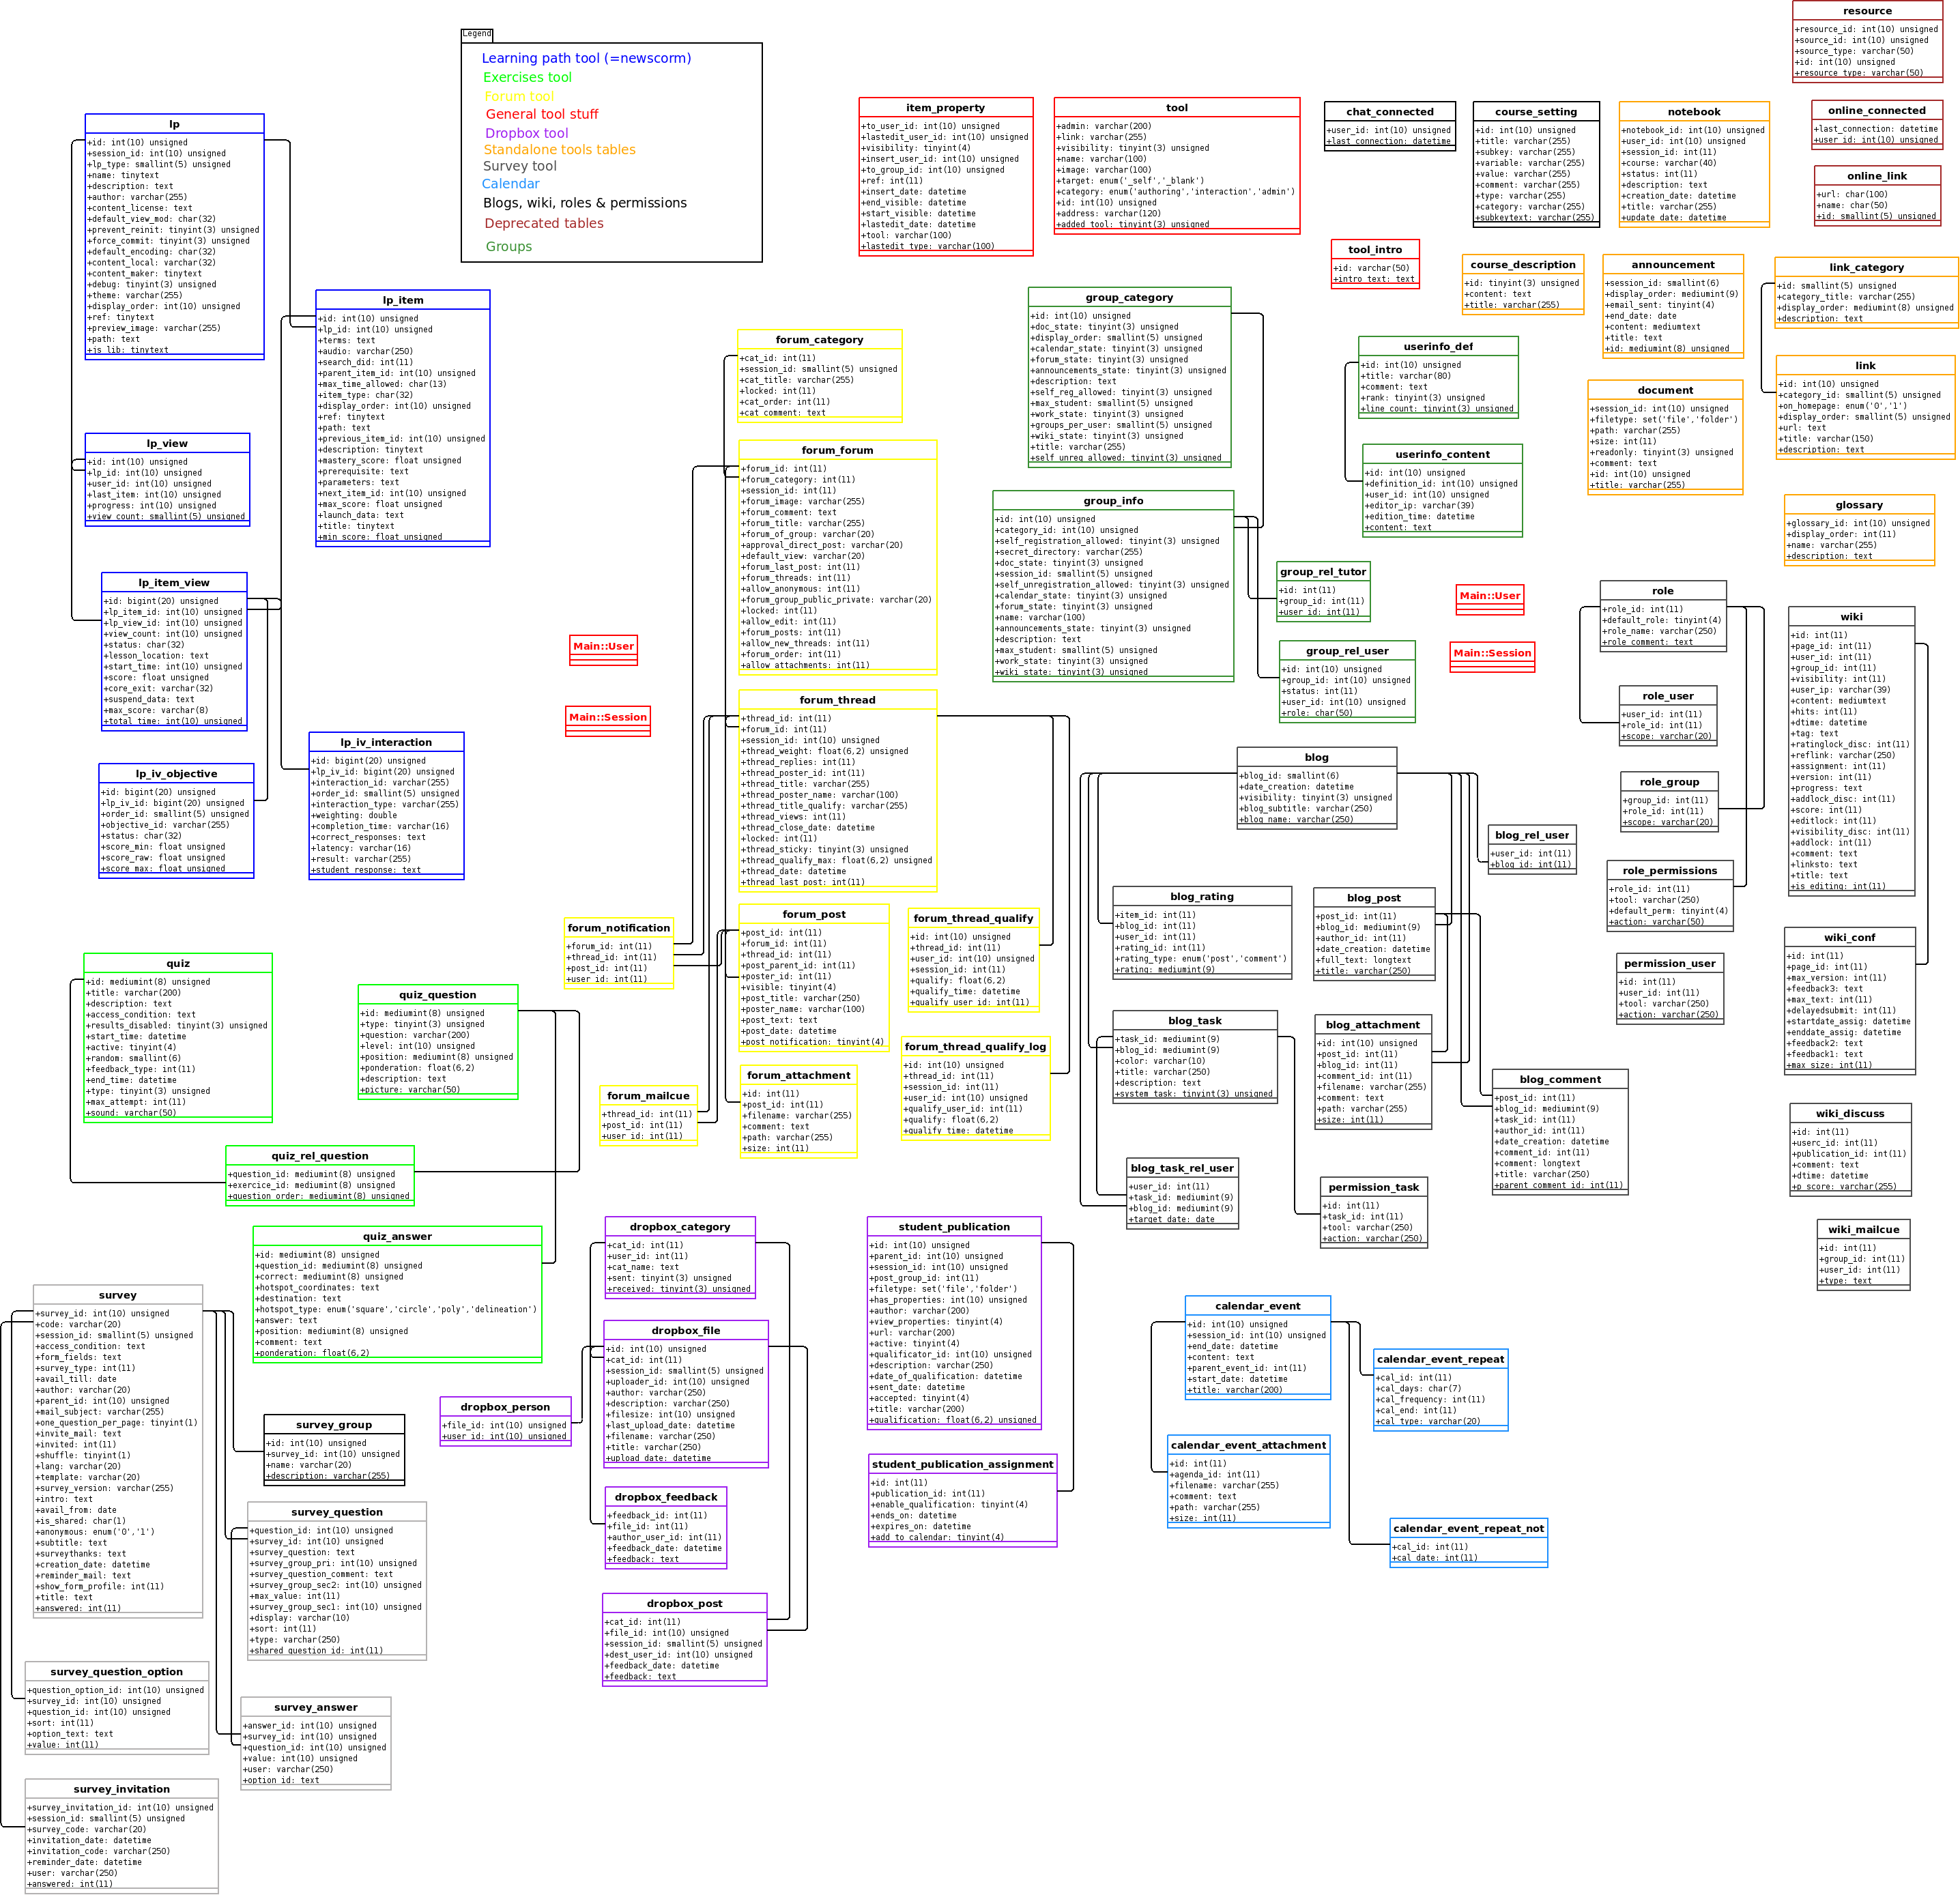 Database schema for dokeos 186 beeznest n1 chamilo provider dokeos 186 course database schema ccuart Image collections